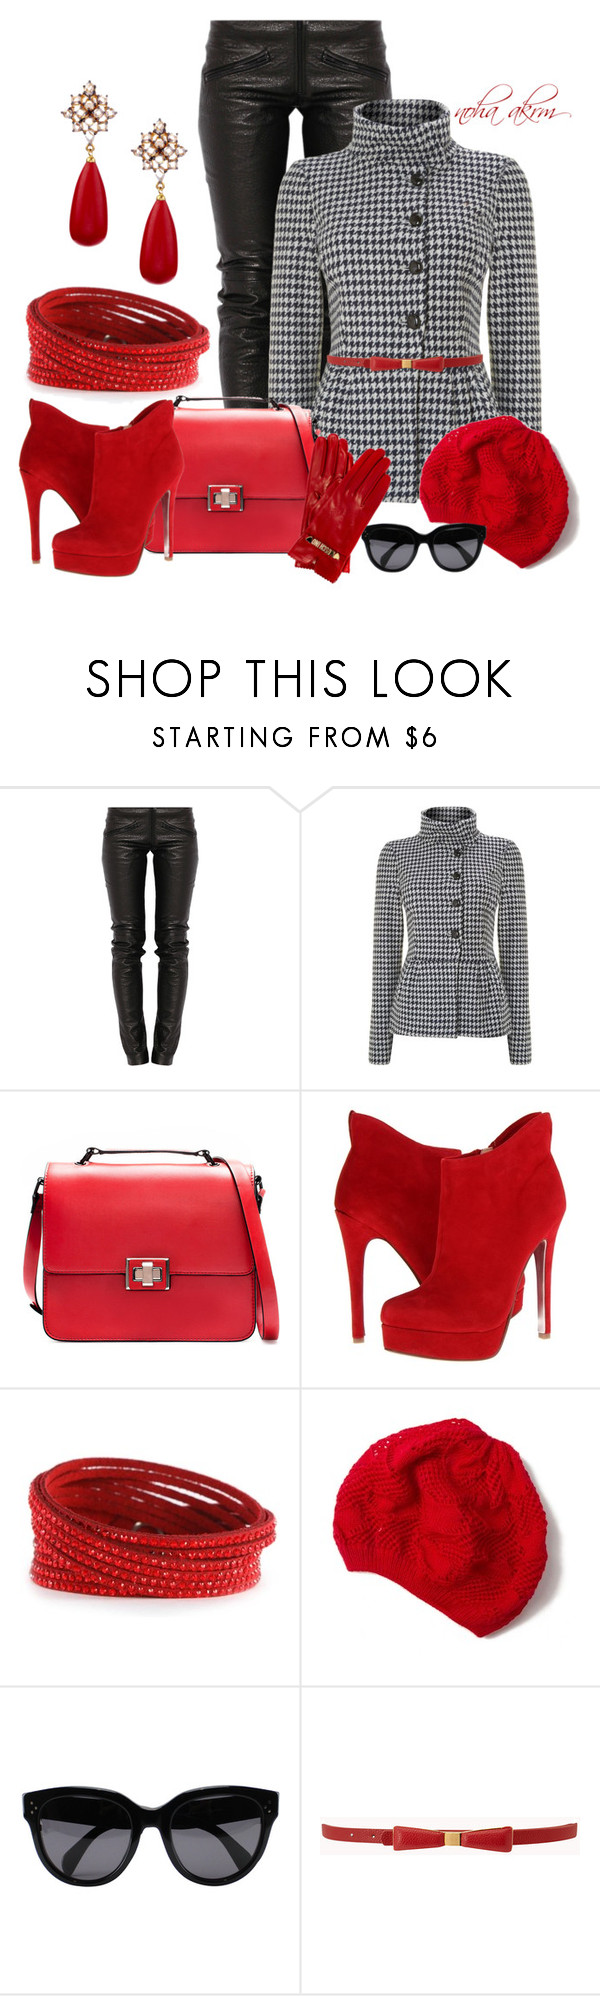 """""""Untitled #681"""" by noha-akram ❤ liked on Polyvore featuring Preen, Marella, Zara, Chinese Laundry, Nordstrom Rack, Swarovski, CÉLINE, Forever 21 and Moschino Cheap & Chic"""